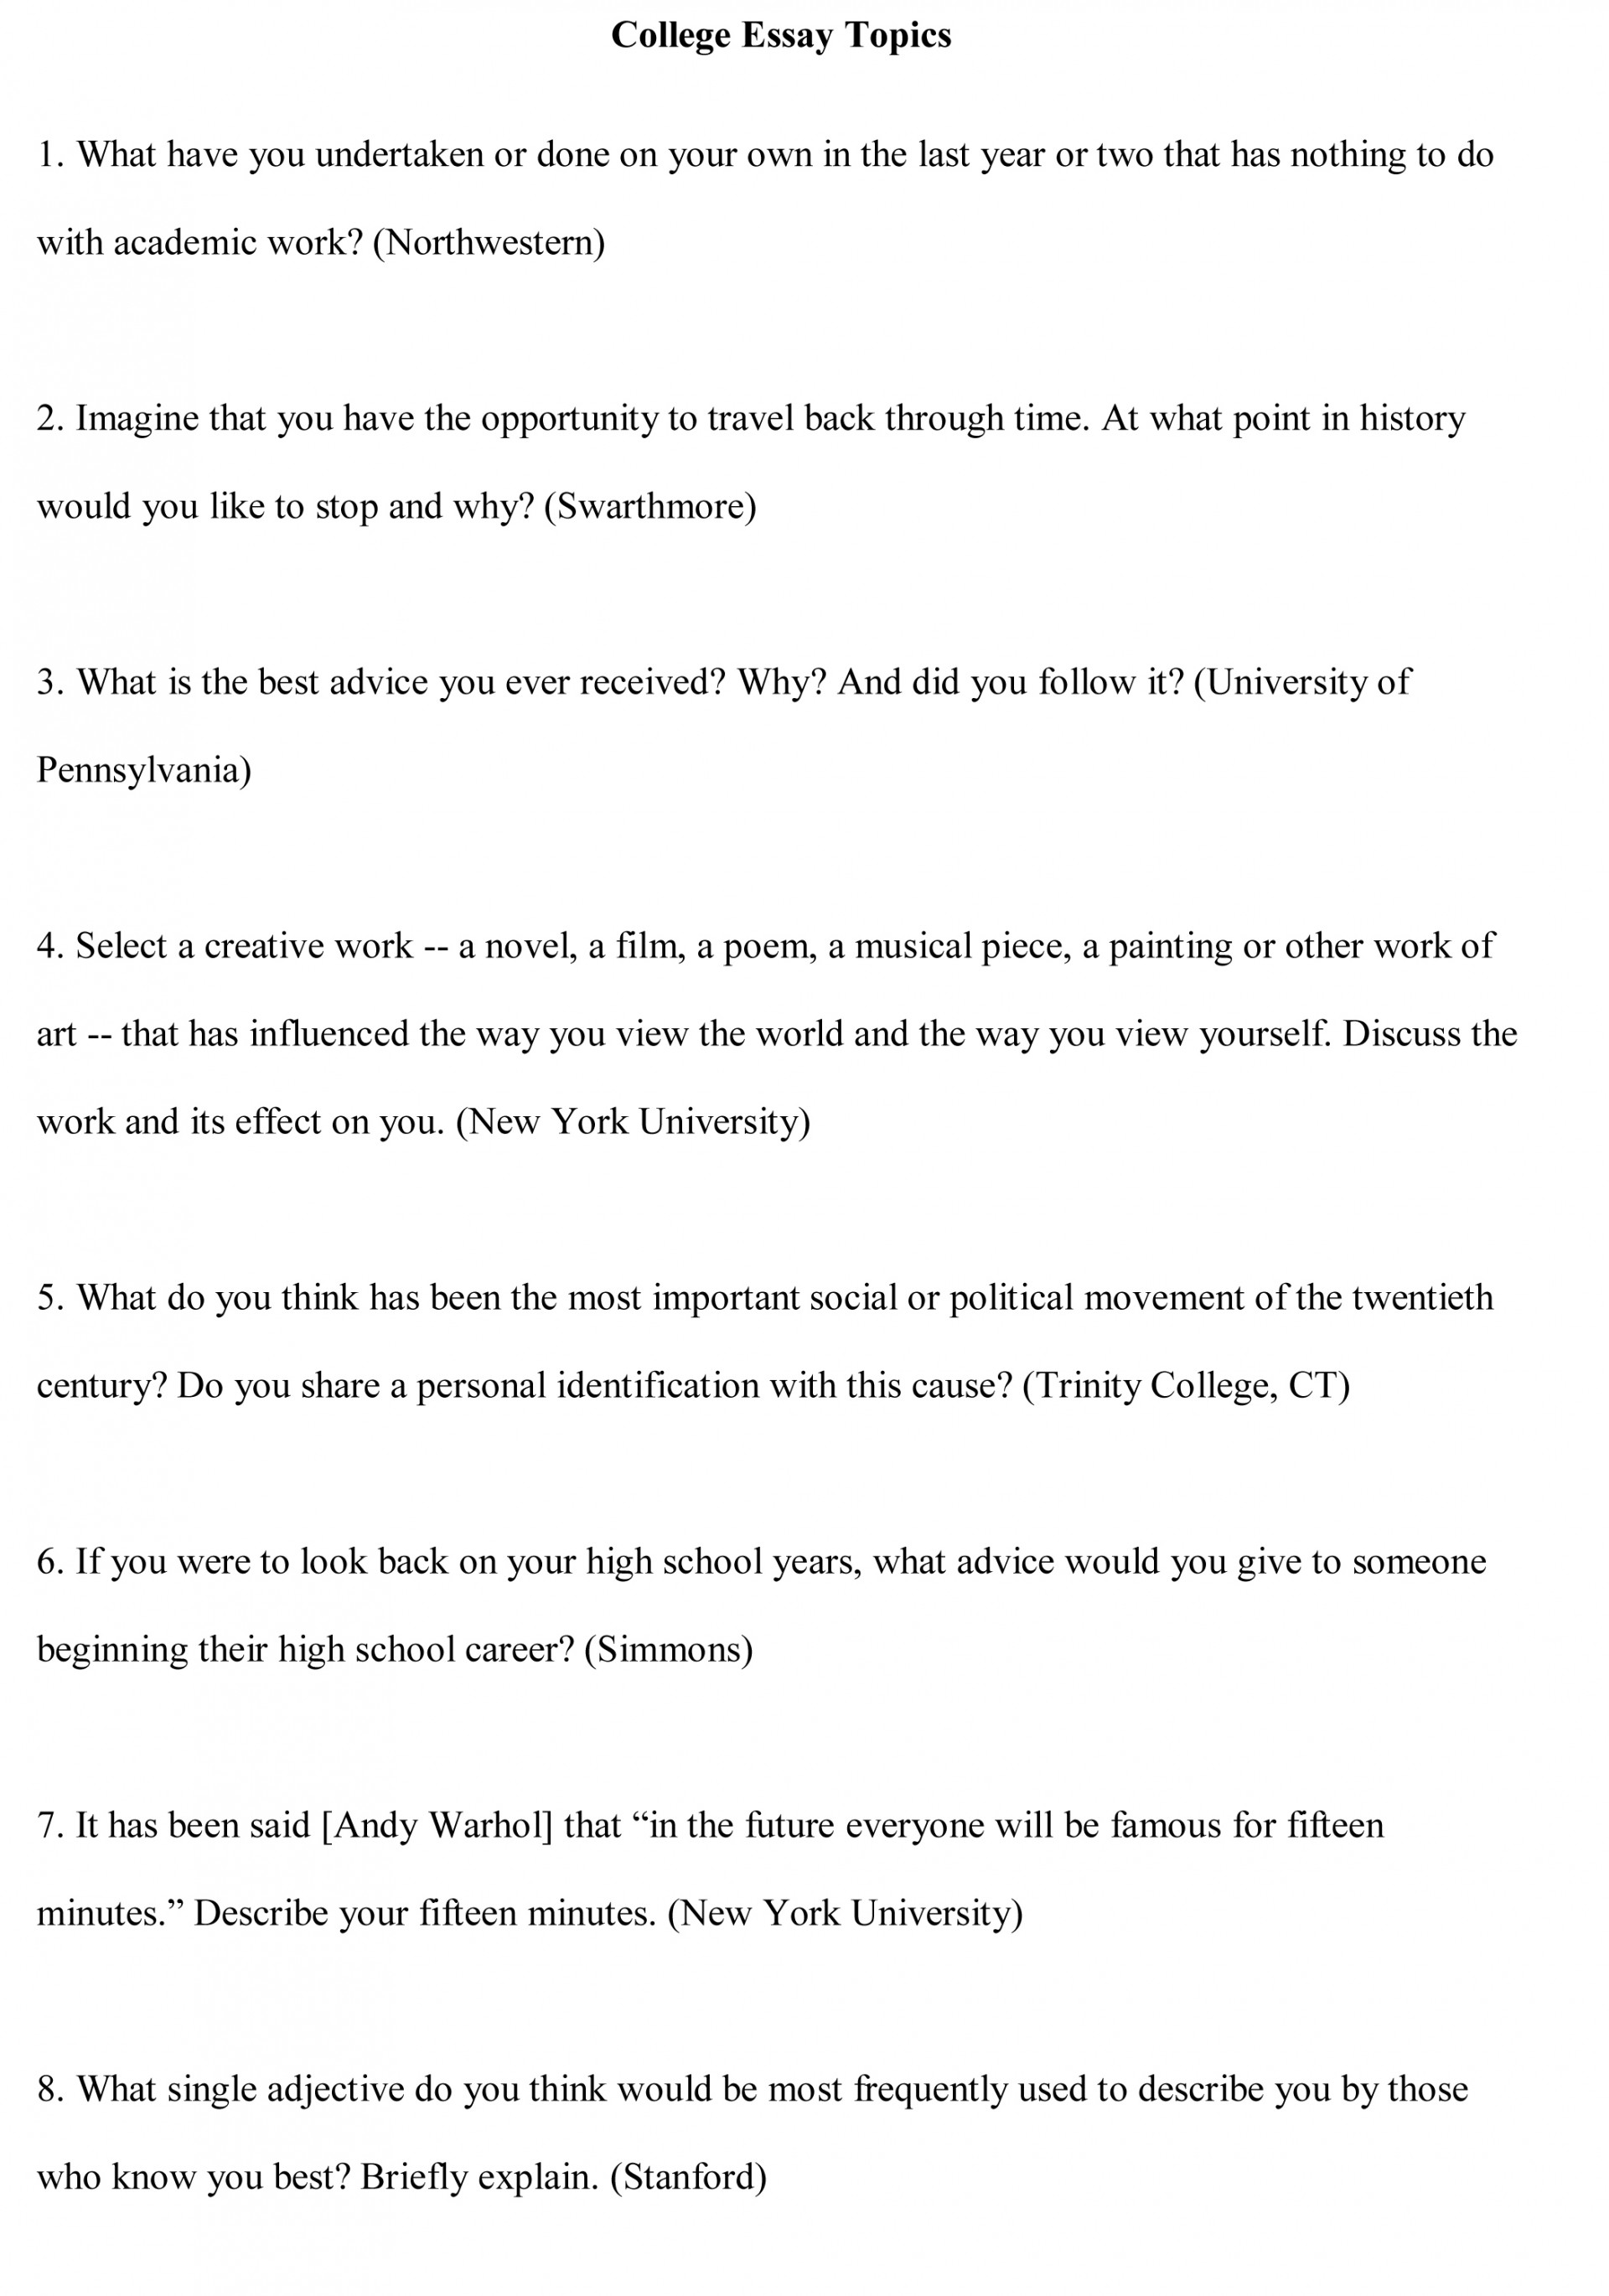 014 Essay Topics College Free Sample1 Archaicawful For High School English Schoolers Grade 8 1920